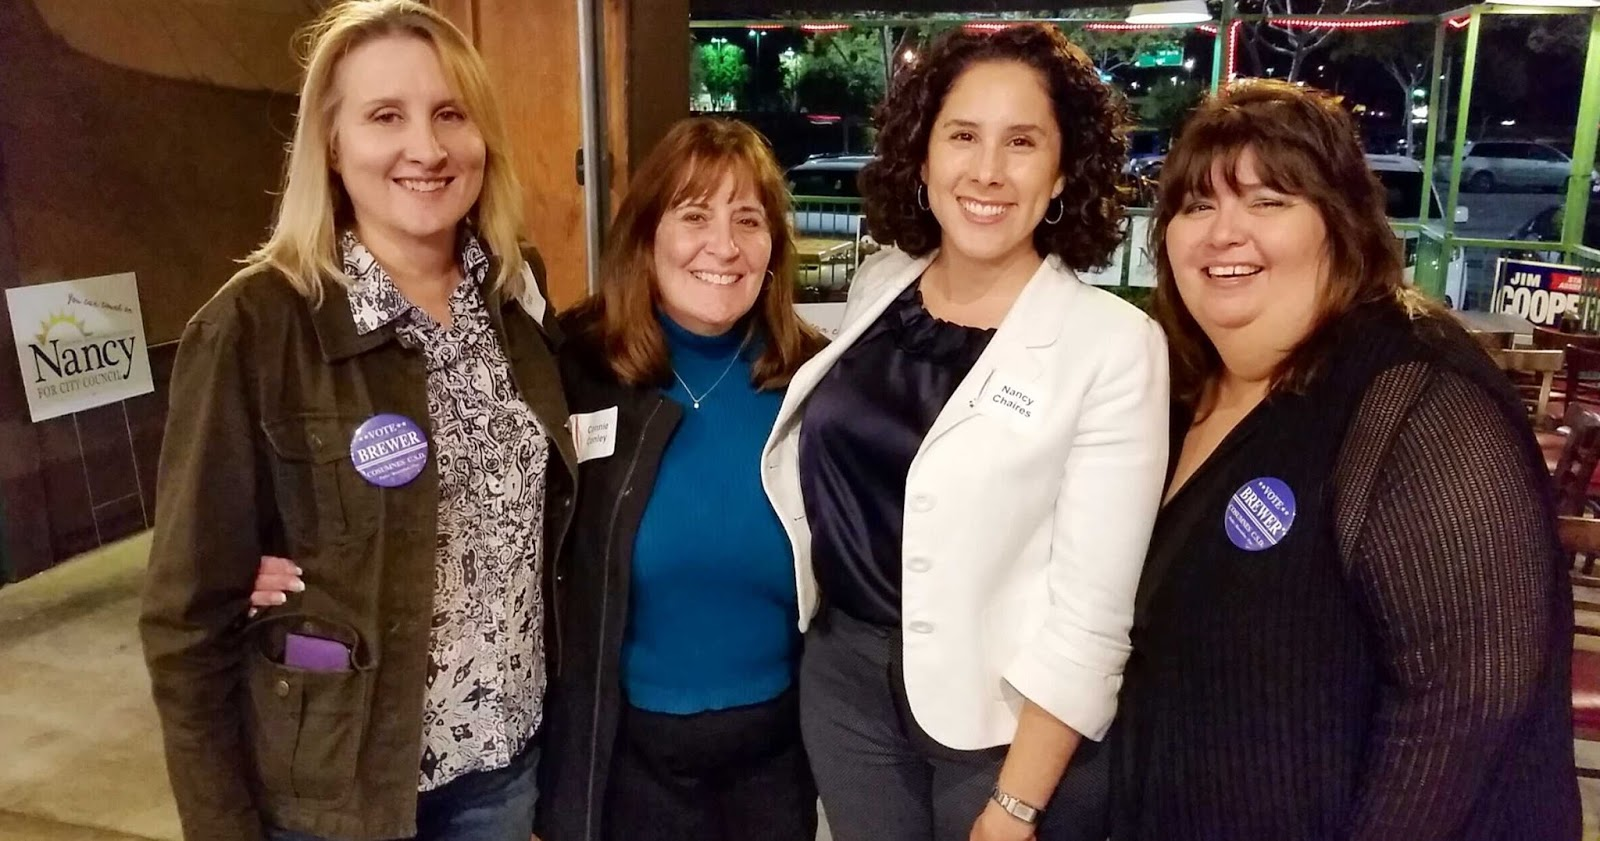 Three Elk Grove-Based Candidates Express Solidarity, Community Commitment at Fundraiser